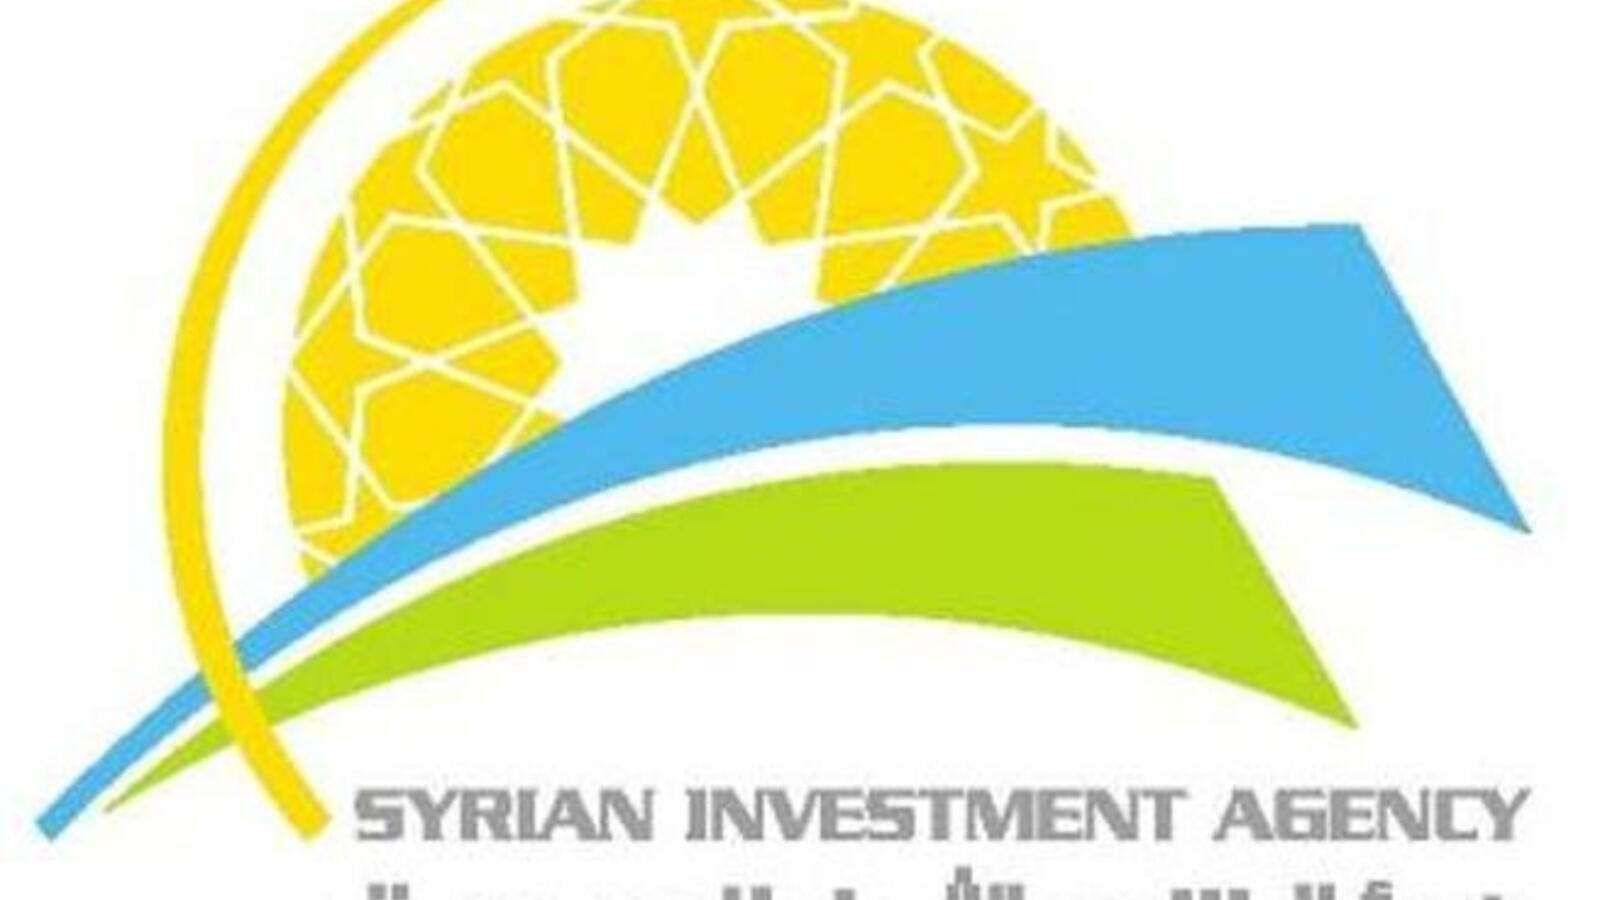 Syrian Investment Agency